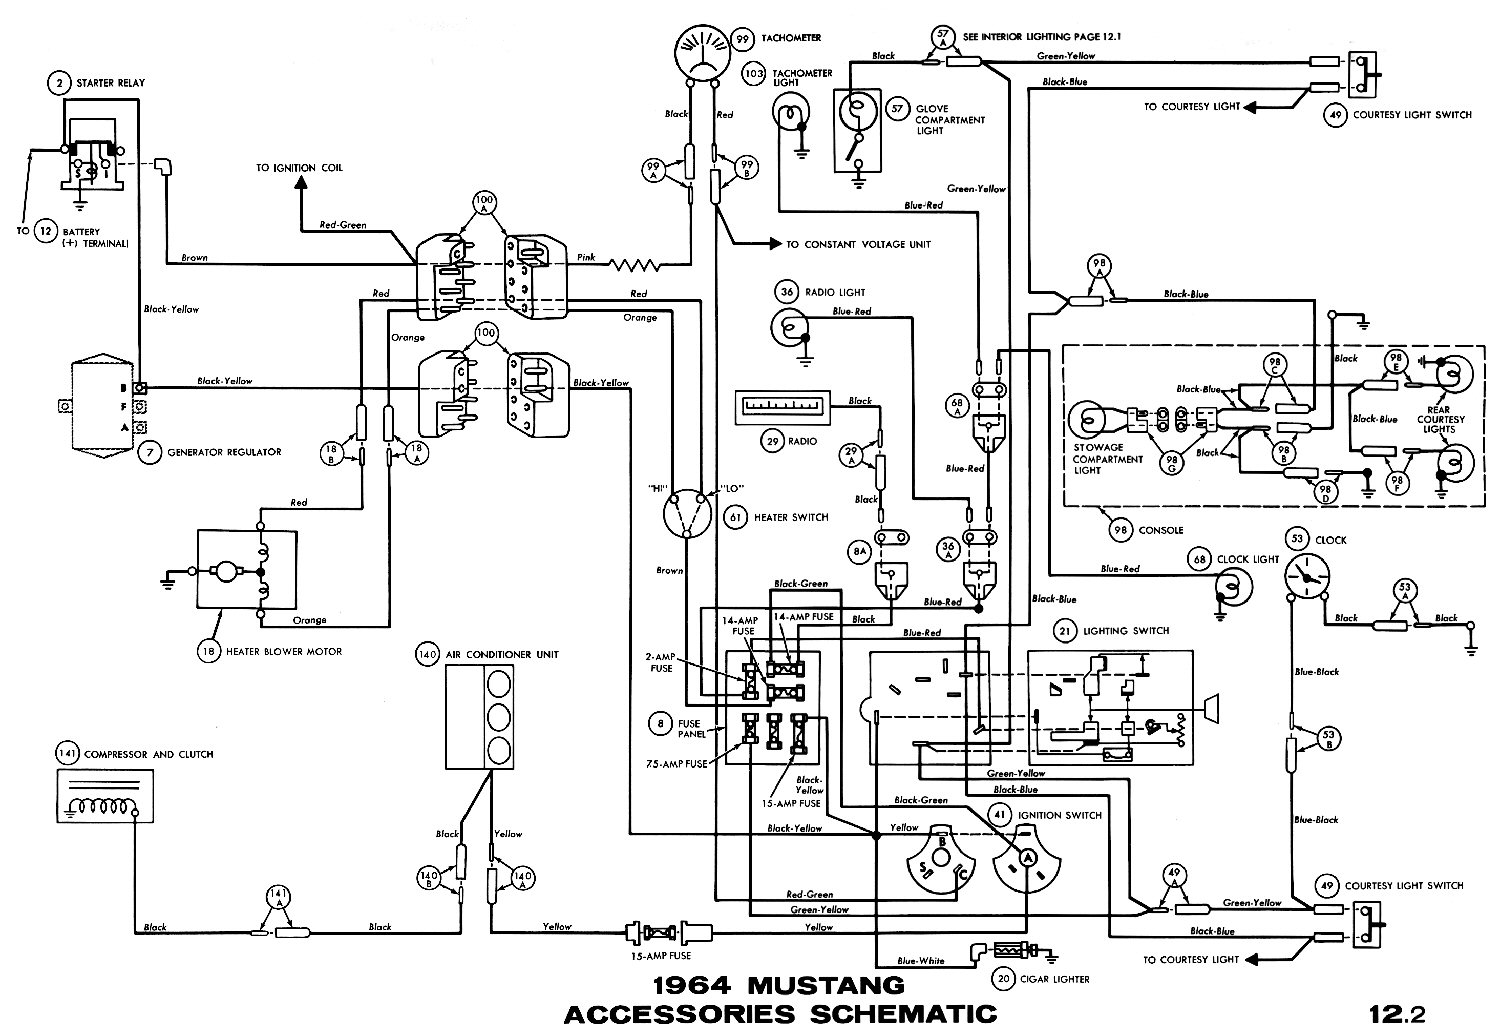 1964 mustang accessories pictorial or schematic basic electronics 1964 1 2 mustang fuse box diagram [ 1500 x 1036 Pixel ]